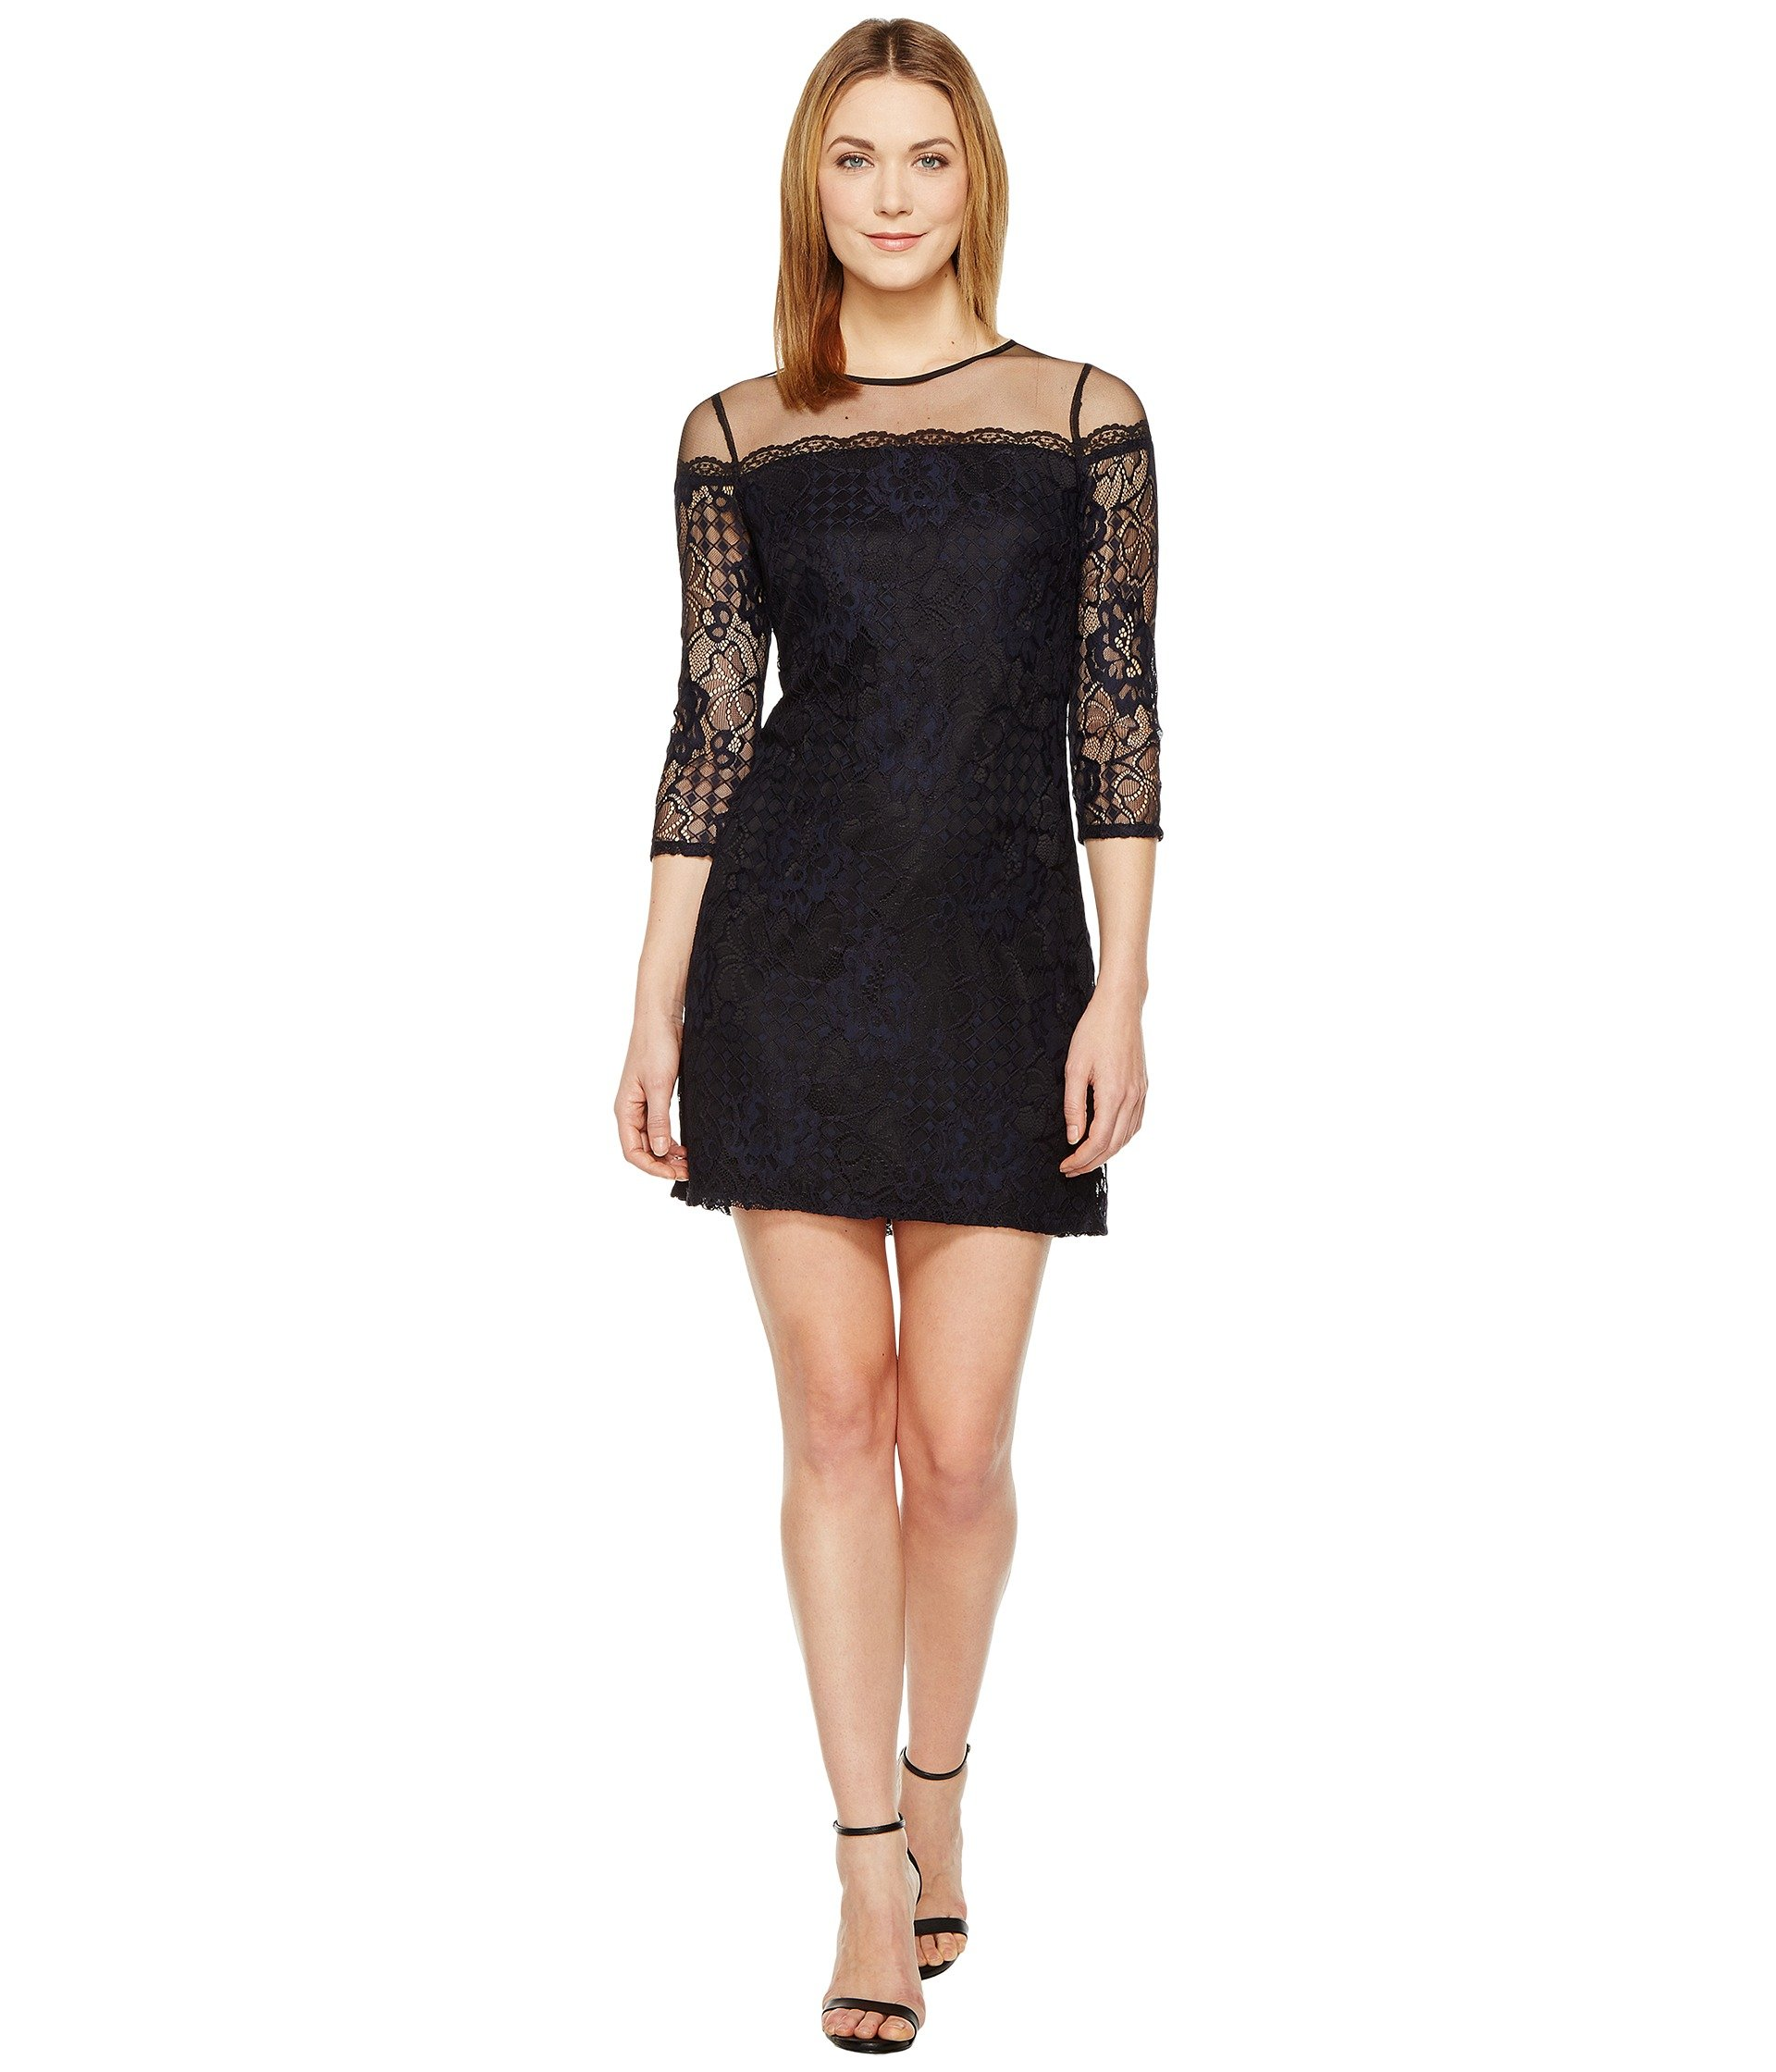 Vestido para Mujer Adrianna Papell Adele Lace Shift Dress  + Adrianna Papell en VeoyCompro.net